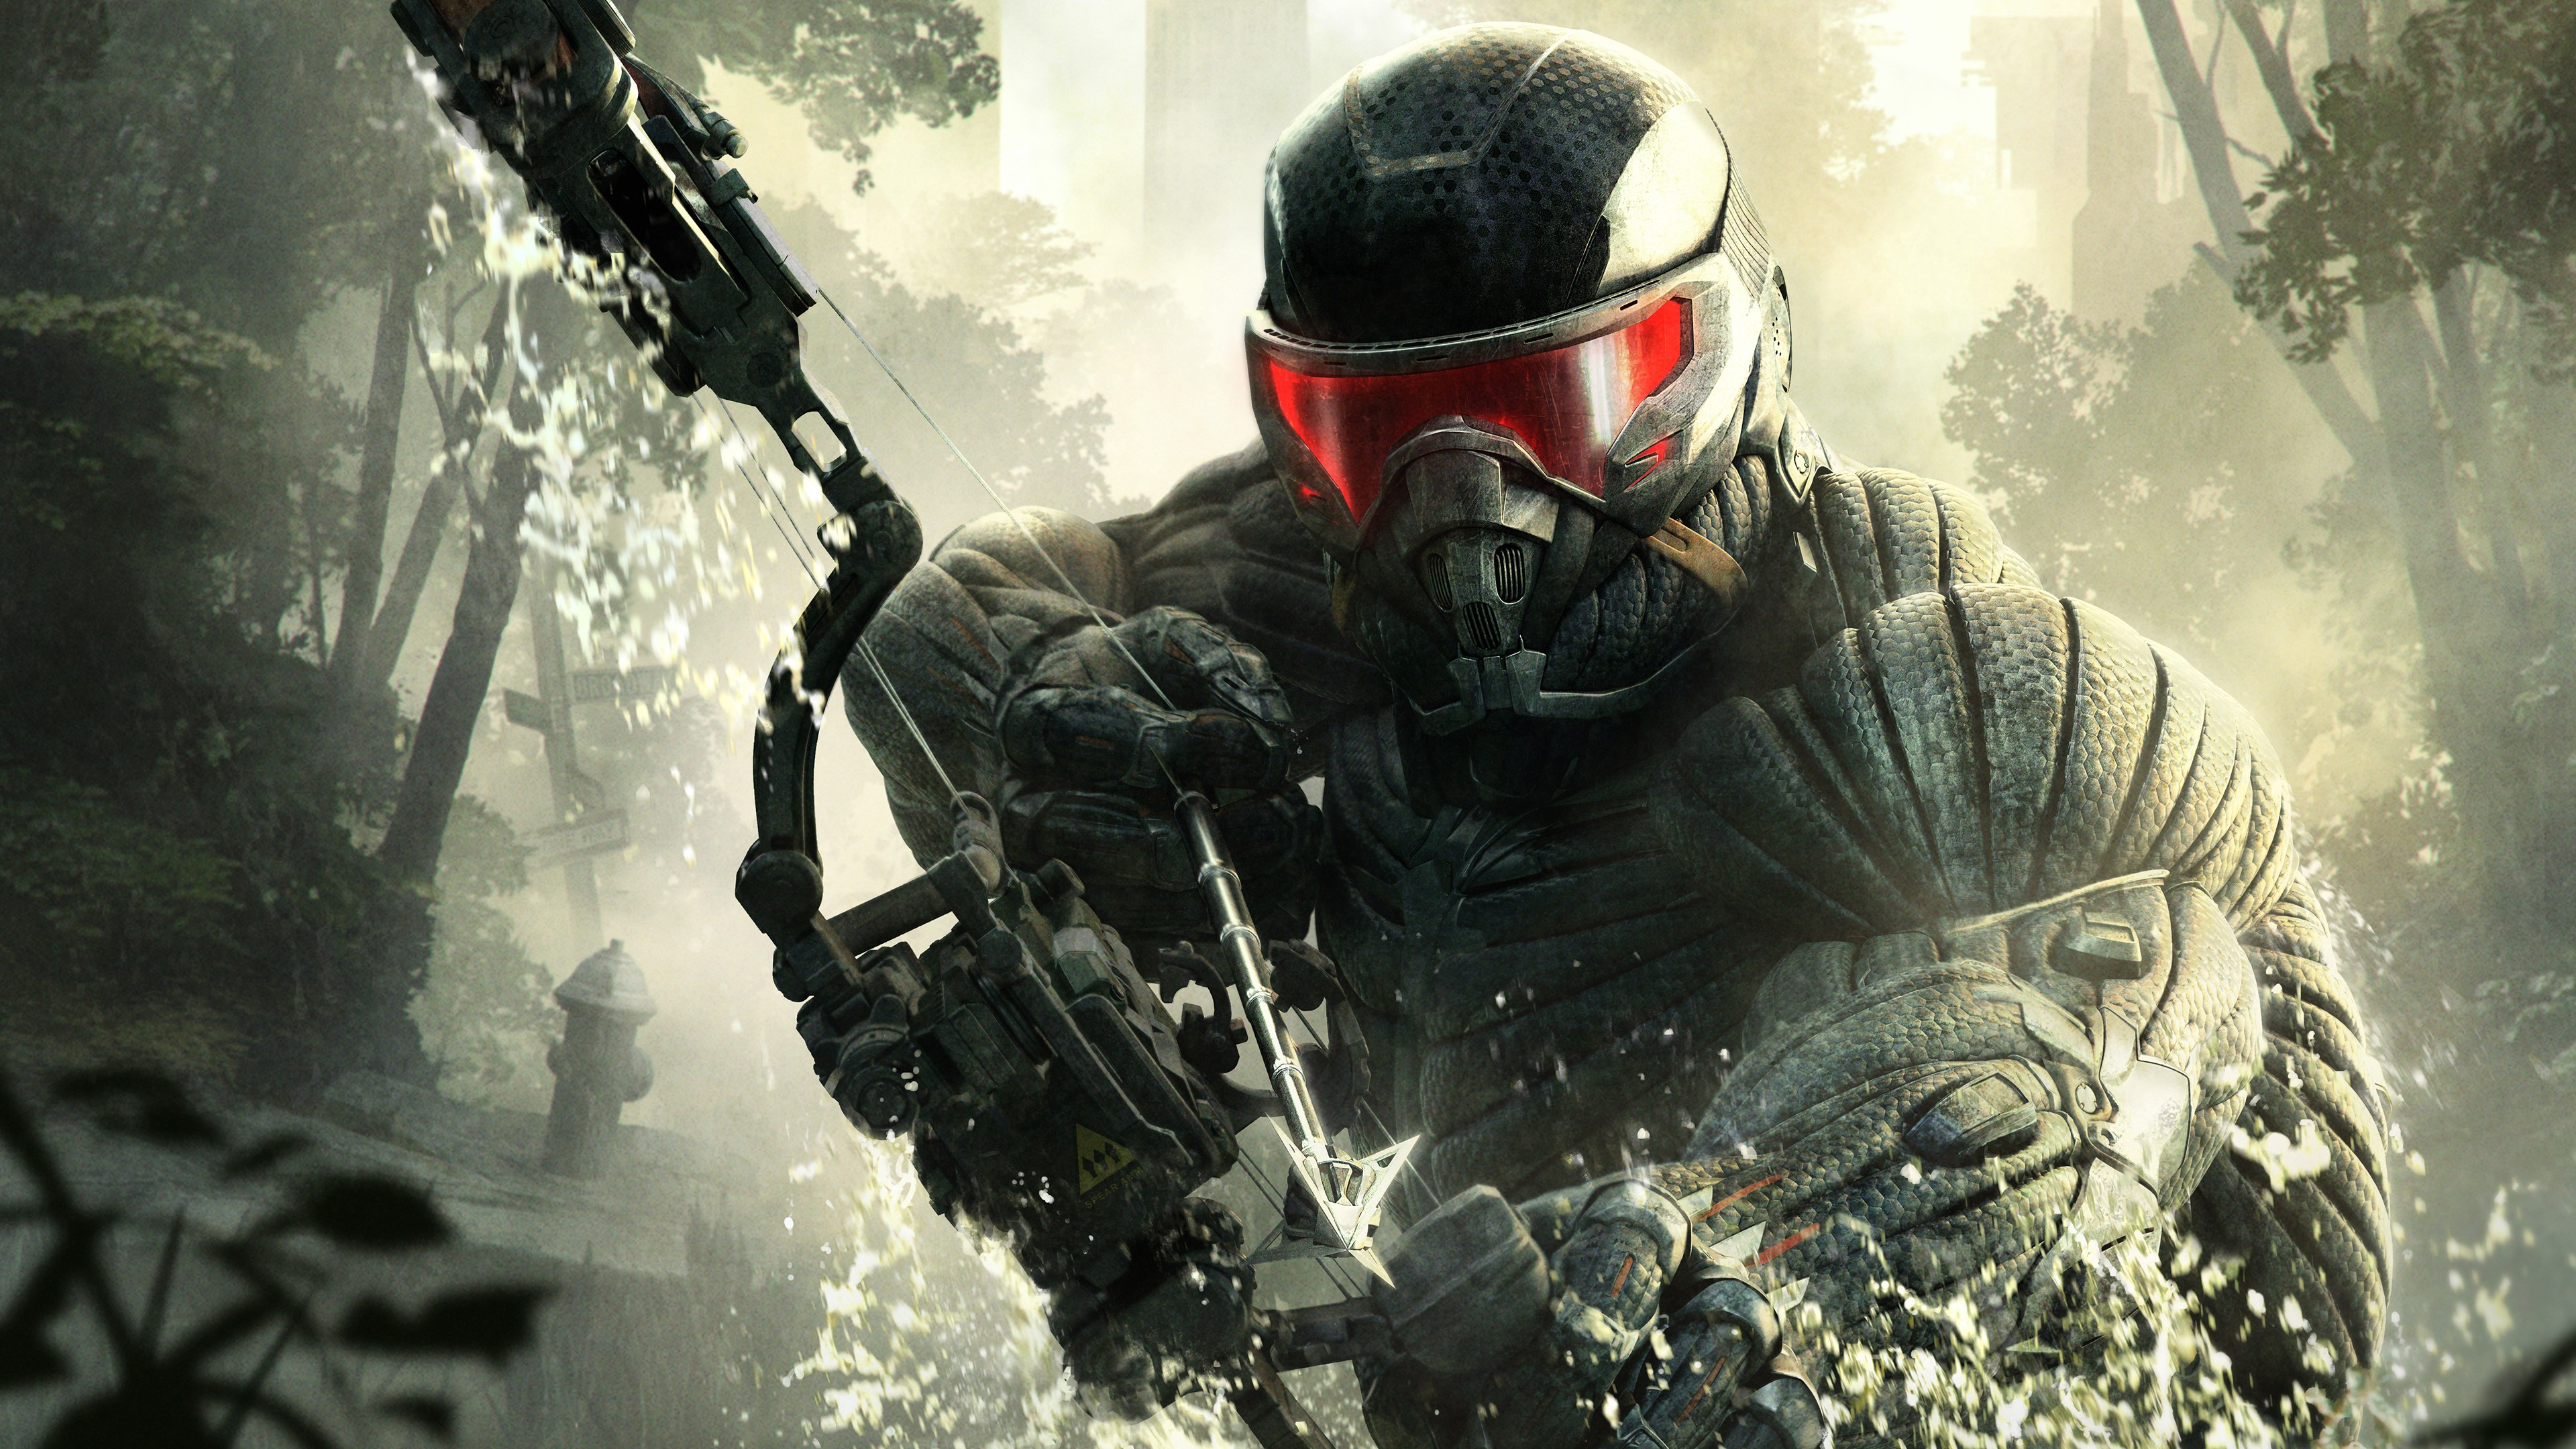 Crysis 3 Official Game Wallpaper Crysis 3 4k Hd Desktop Wallpaper Hd Wallpapers Hd Backgrounds Tumblr Backgrounds Images Pictures